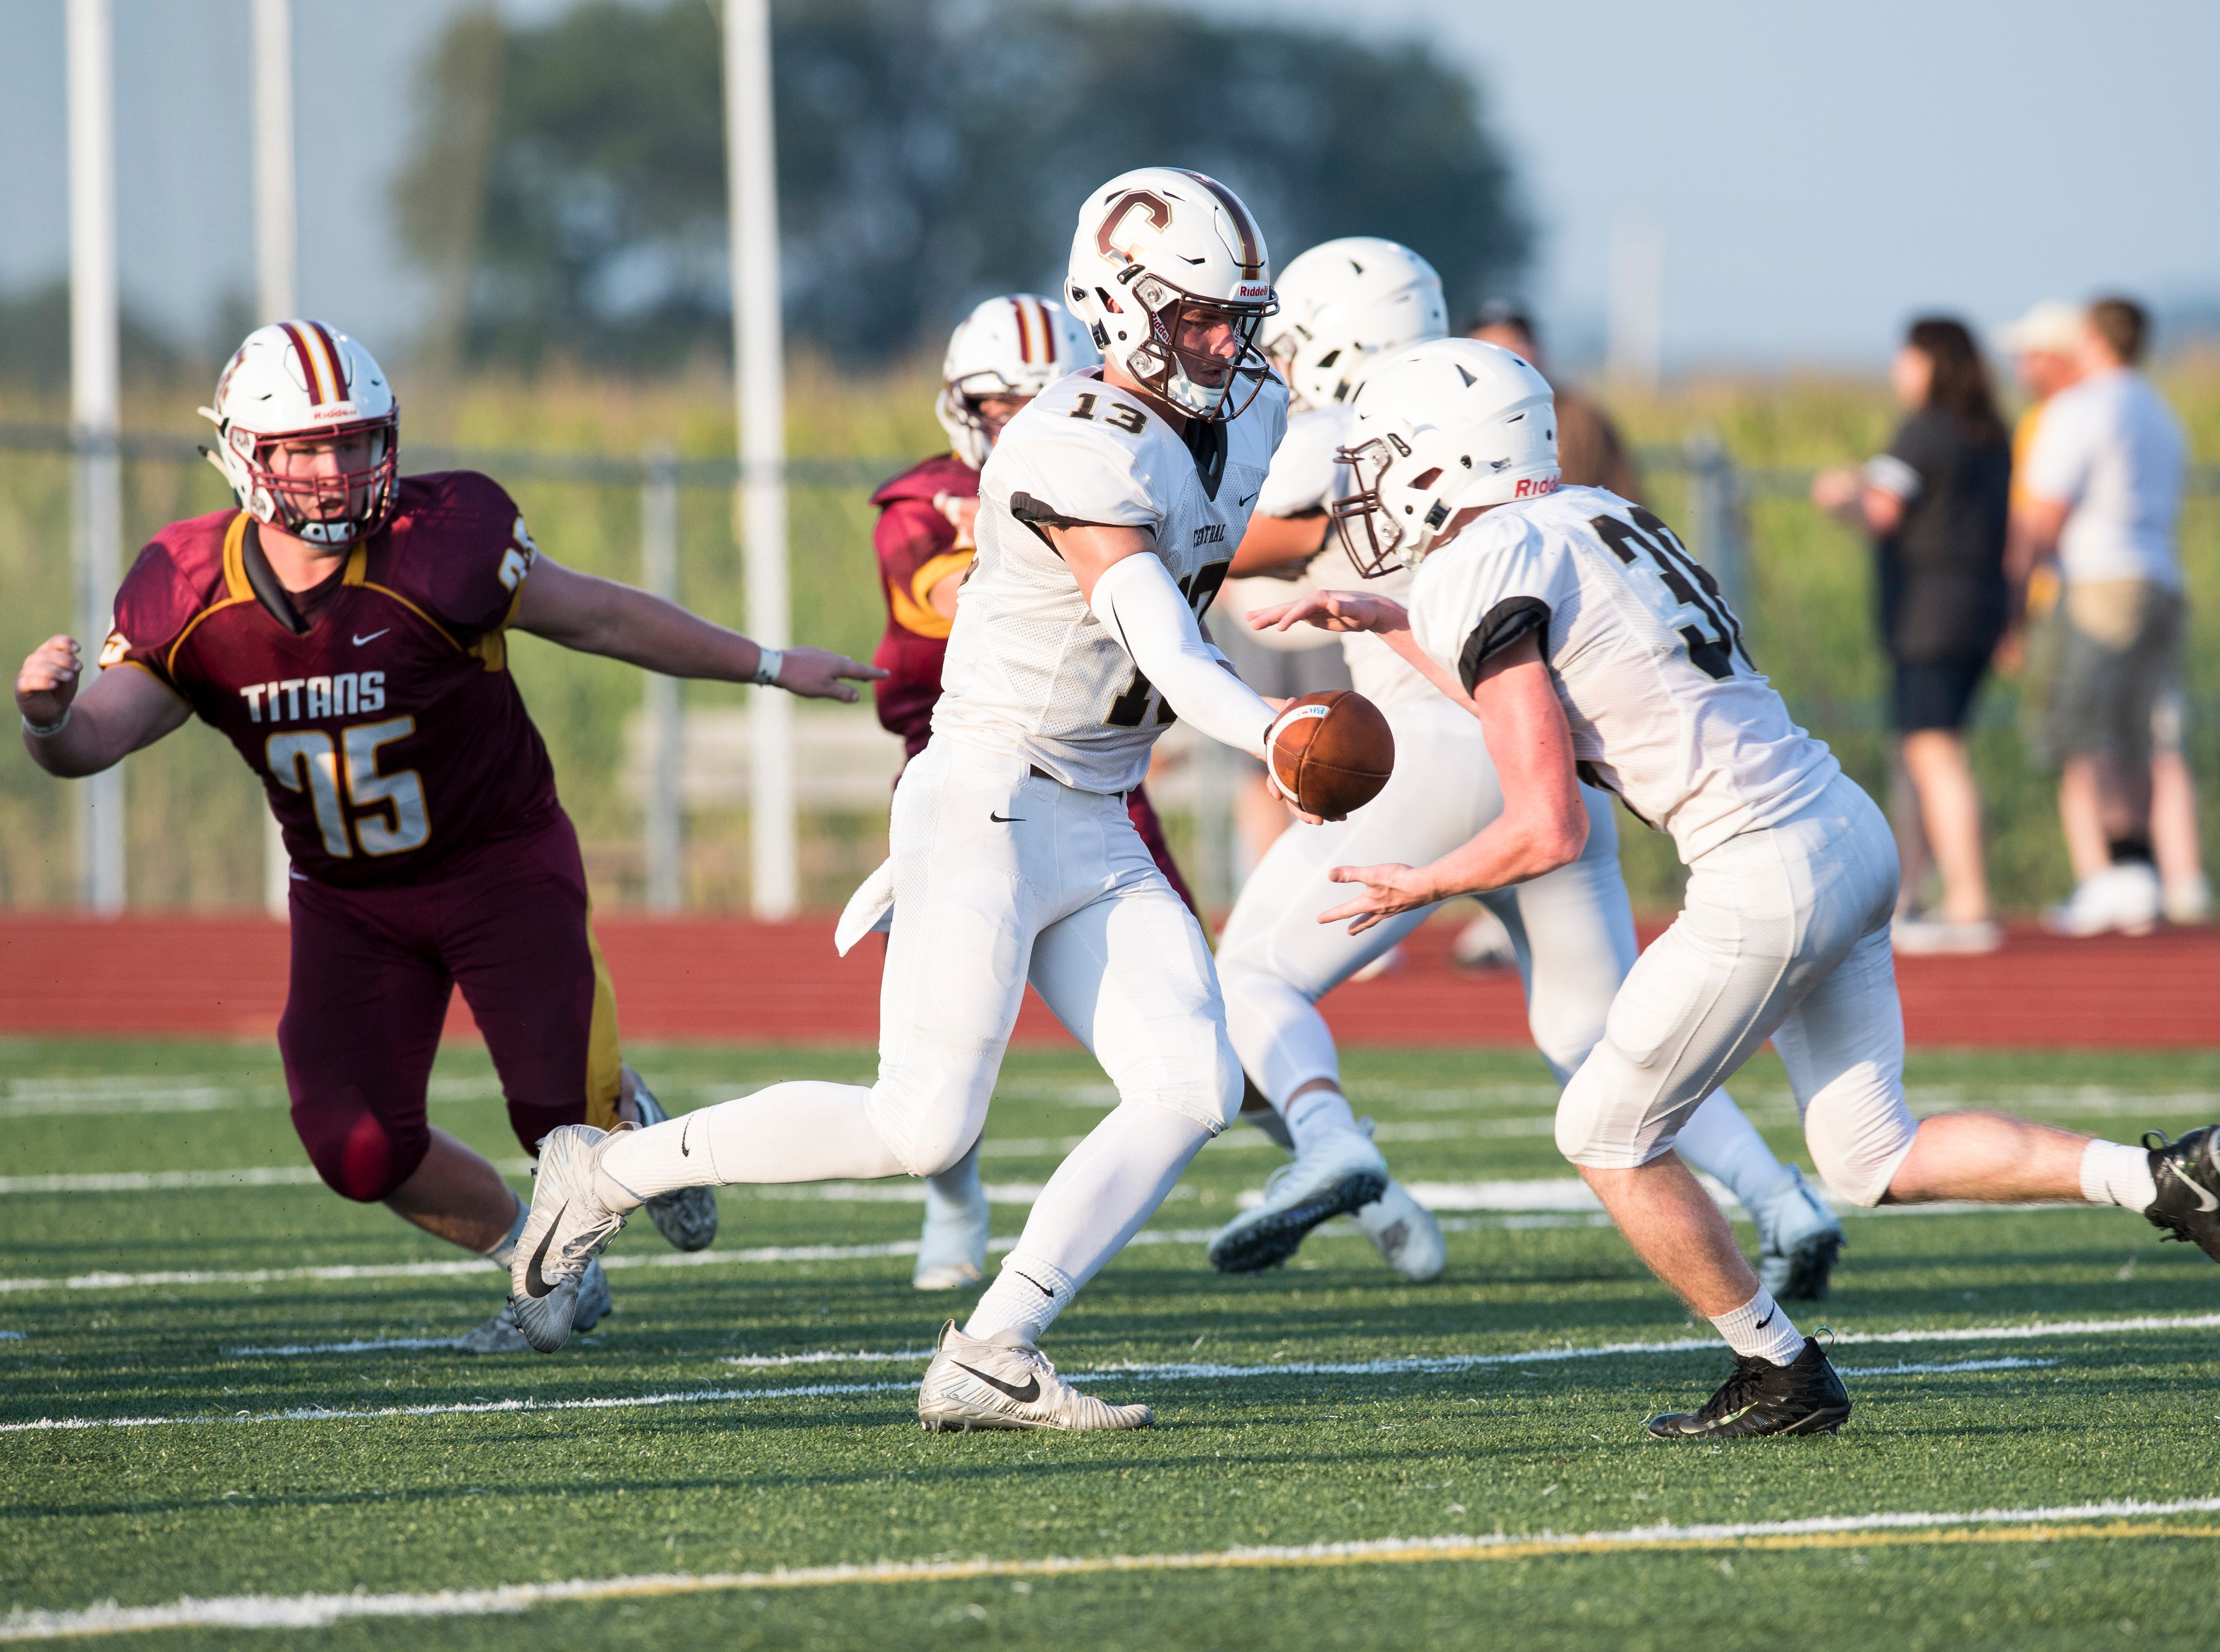 Central's Quarterback Brennon Harper (13) hands the ball off to teammate Brennan Schutte (38) during a scrimmage against Gibson Southern Friday, August 10, 2018.